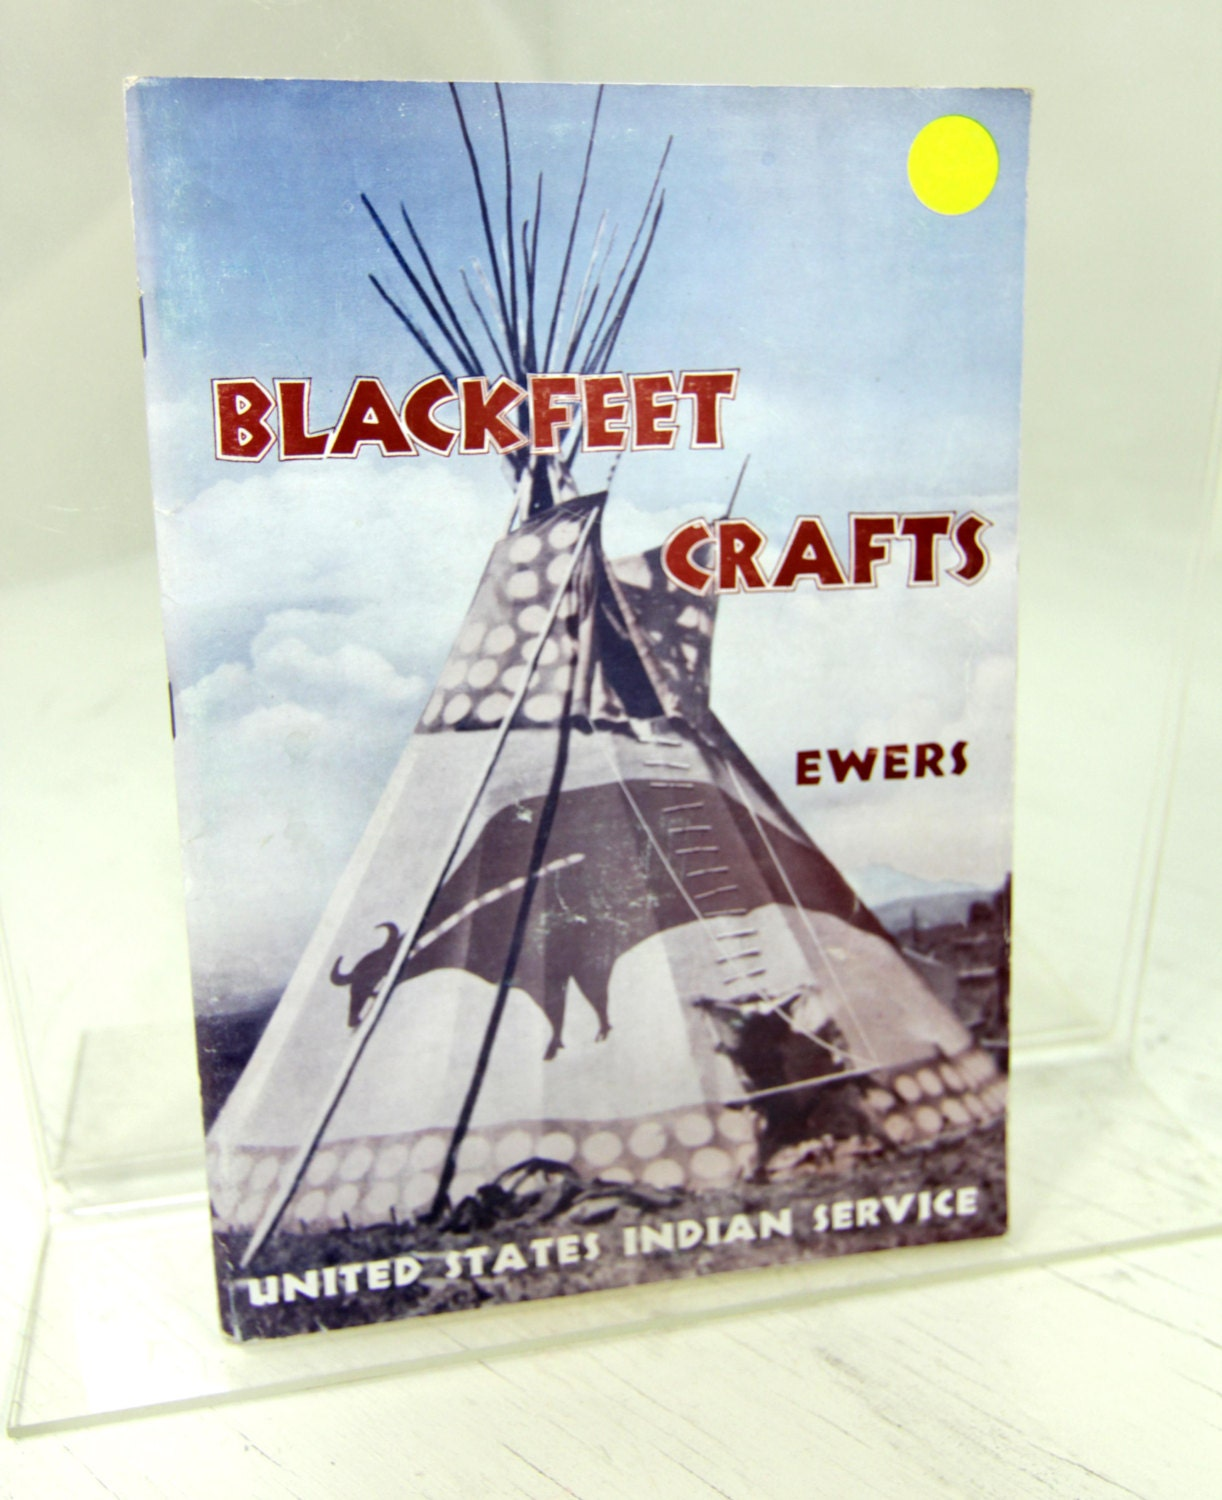 Blackfeet crafts john c ewers vintage native by for What crafts did the blackfoot tribe make